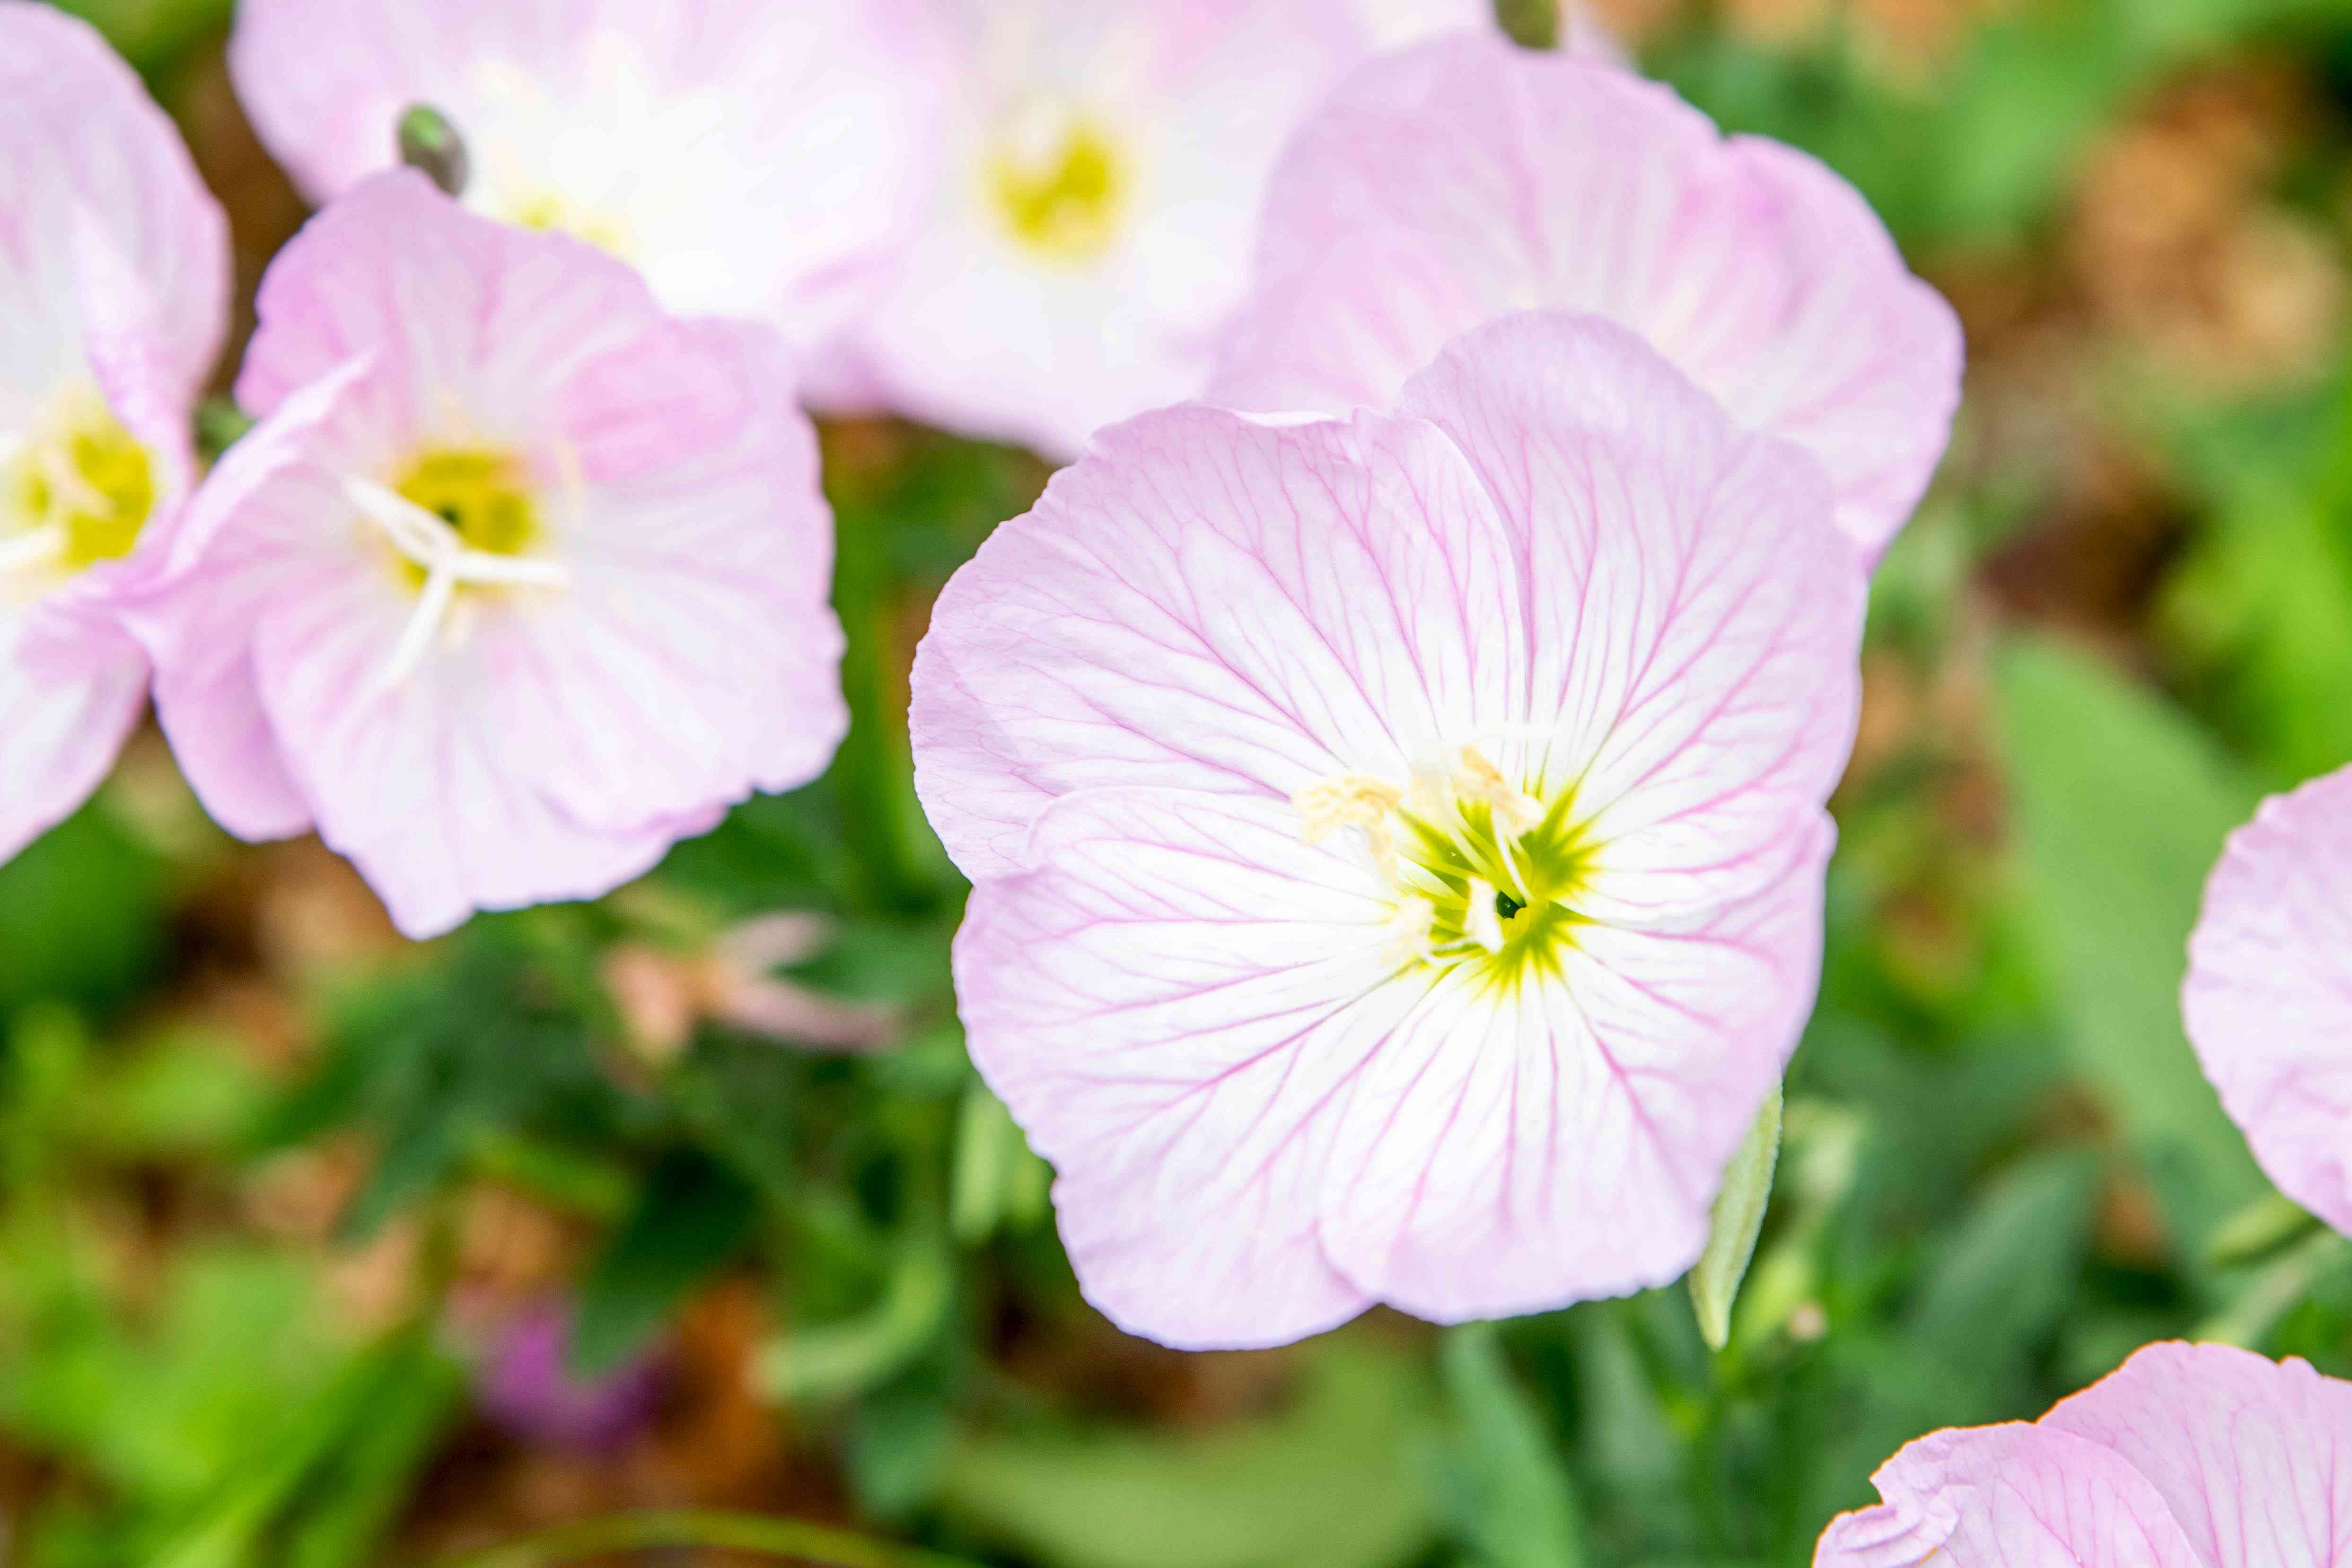 Pink evening primrose flowers with pale pink and white overlapping petals and yellow-green centers closeup